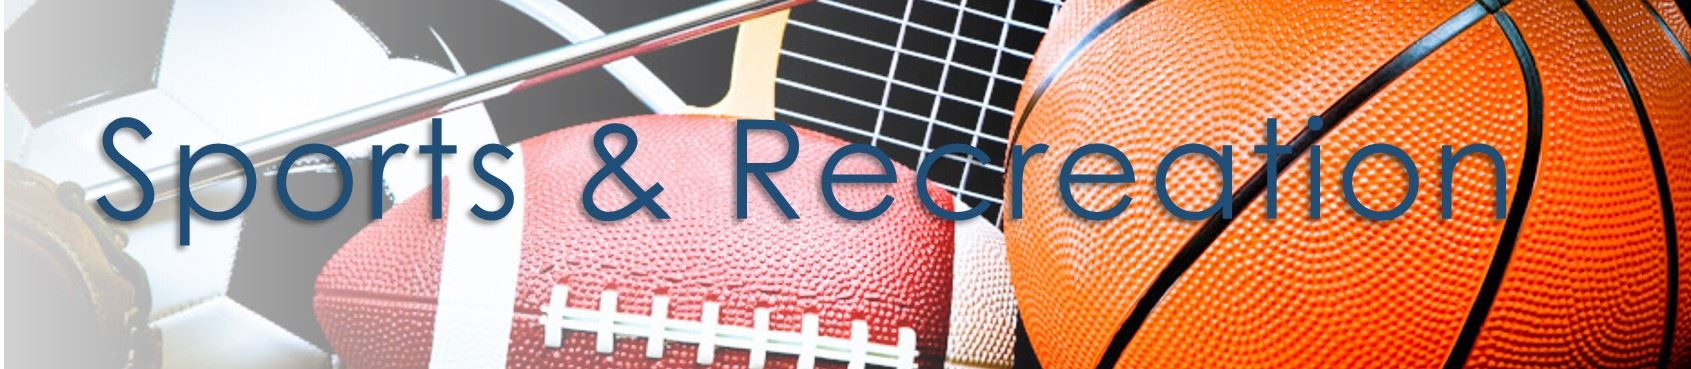 sports recreation banner